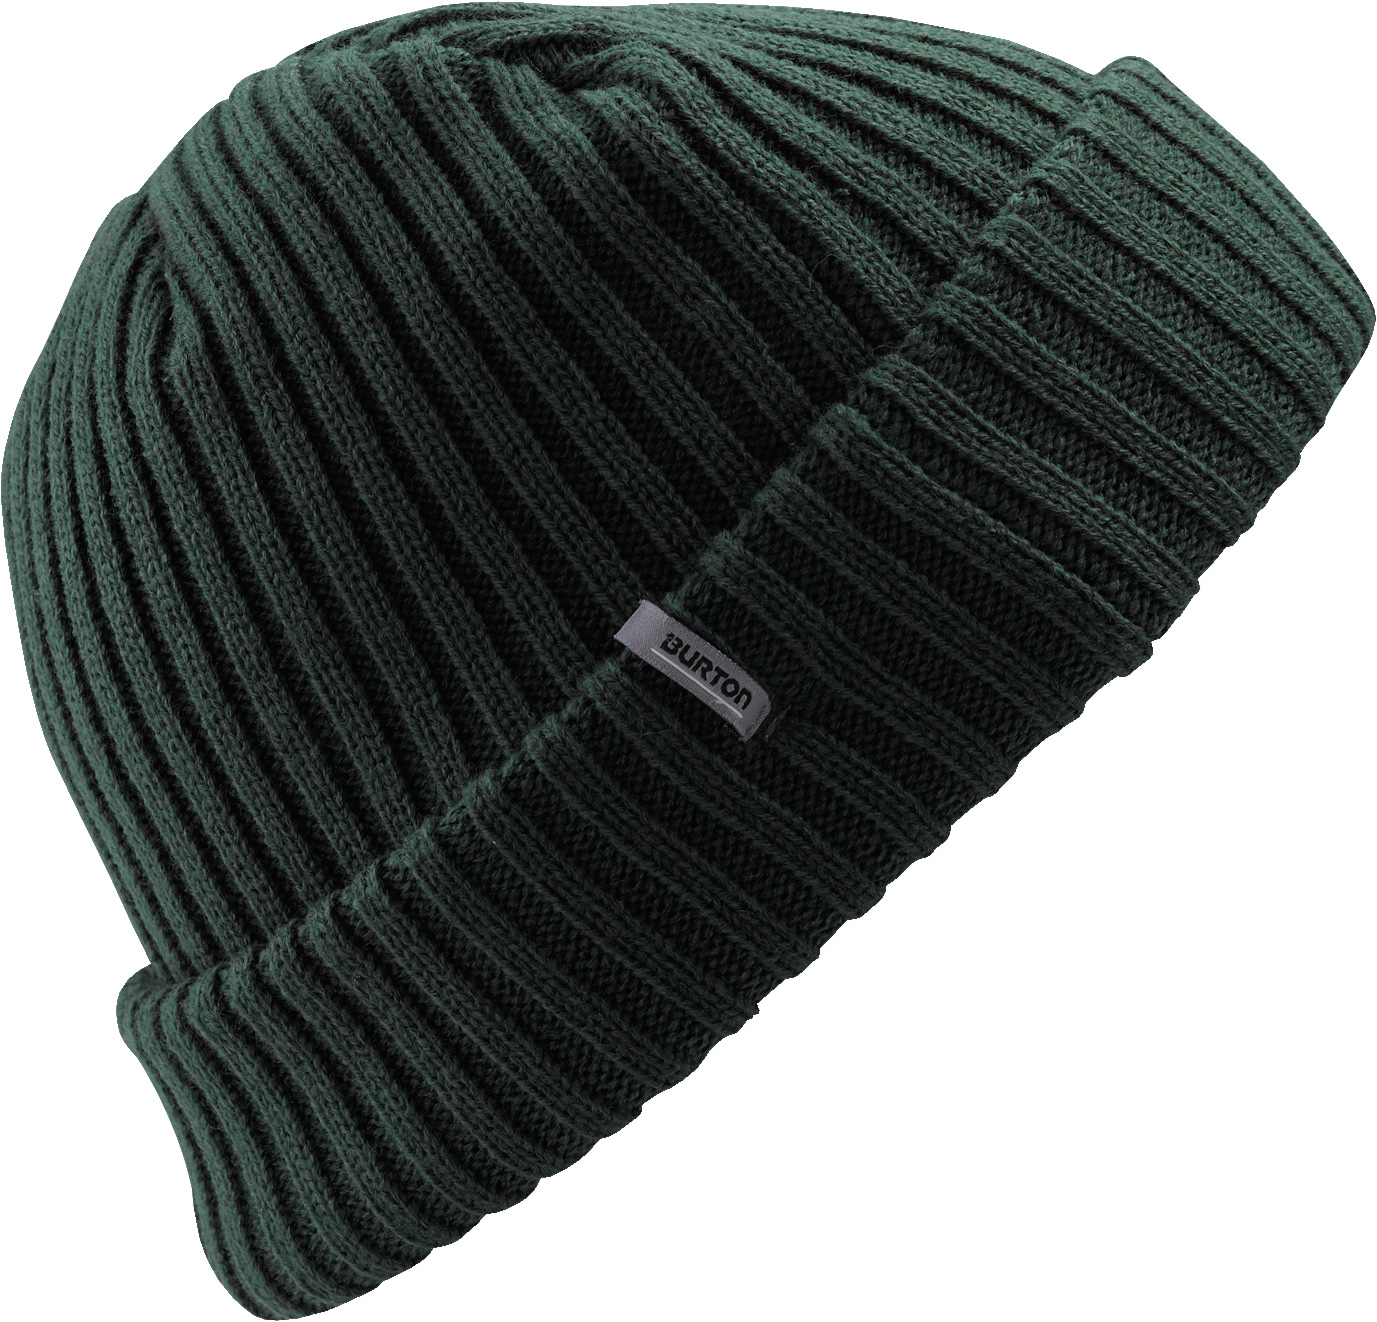 Snowboard Key Features of the Burton Gringo Beanie: 100% Acrylic Basic Fold Up with Skully Fit - $13.95